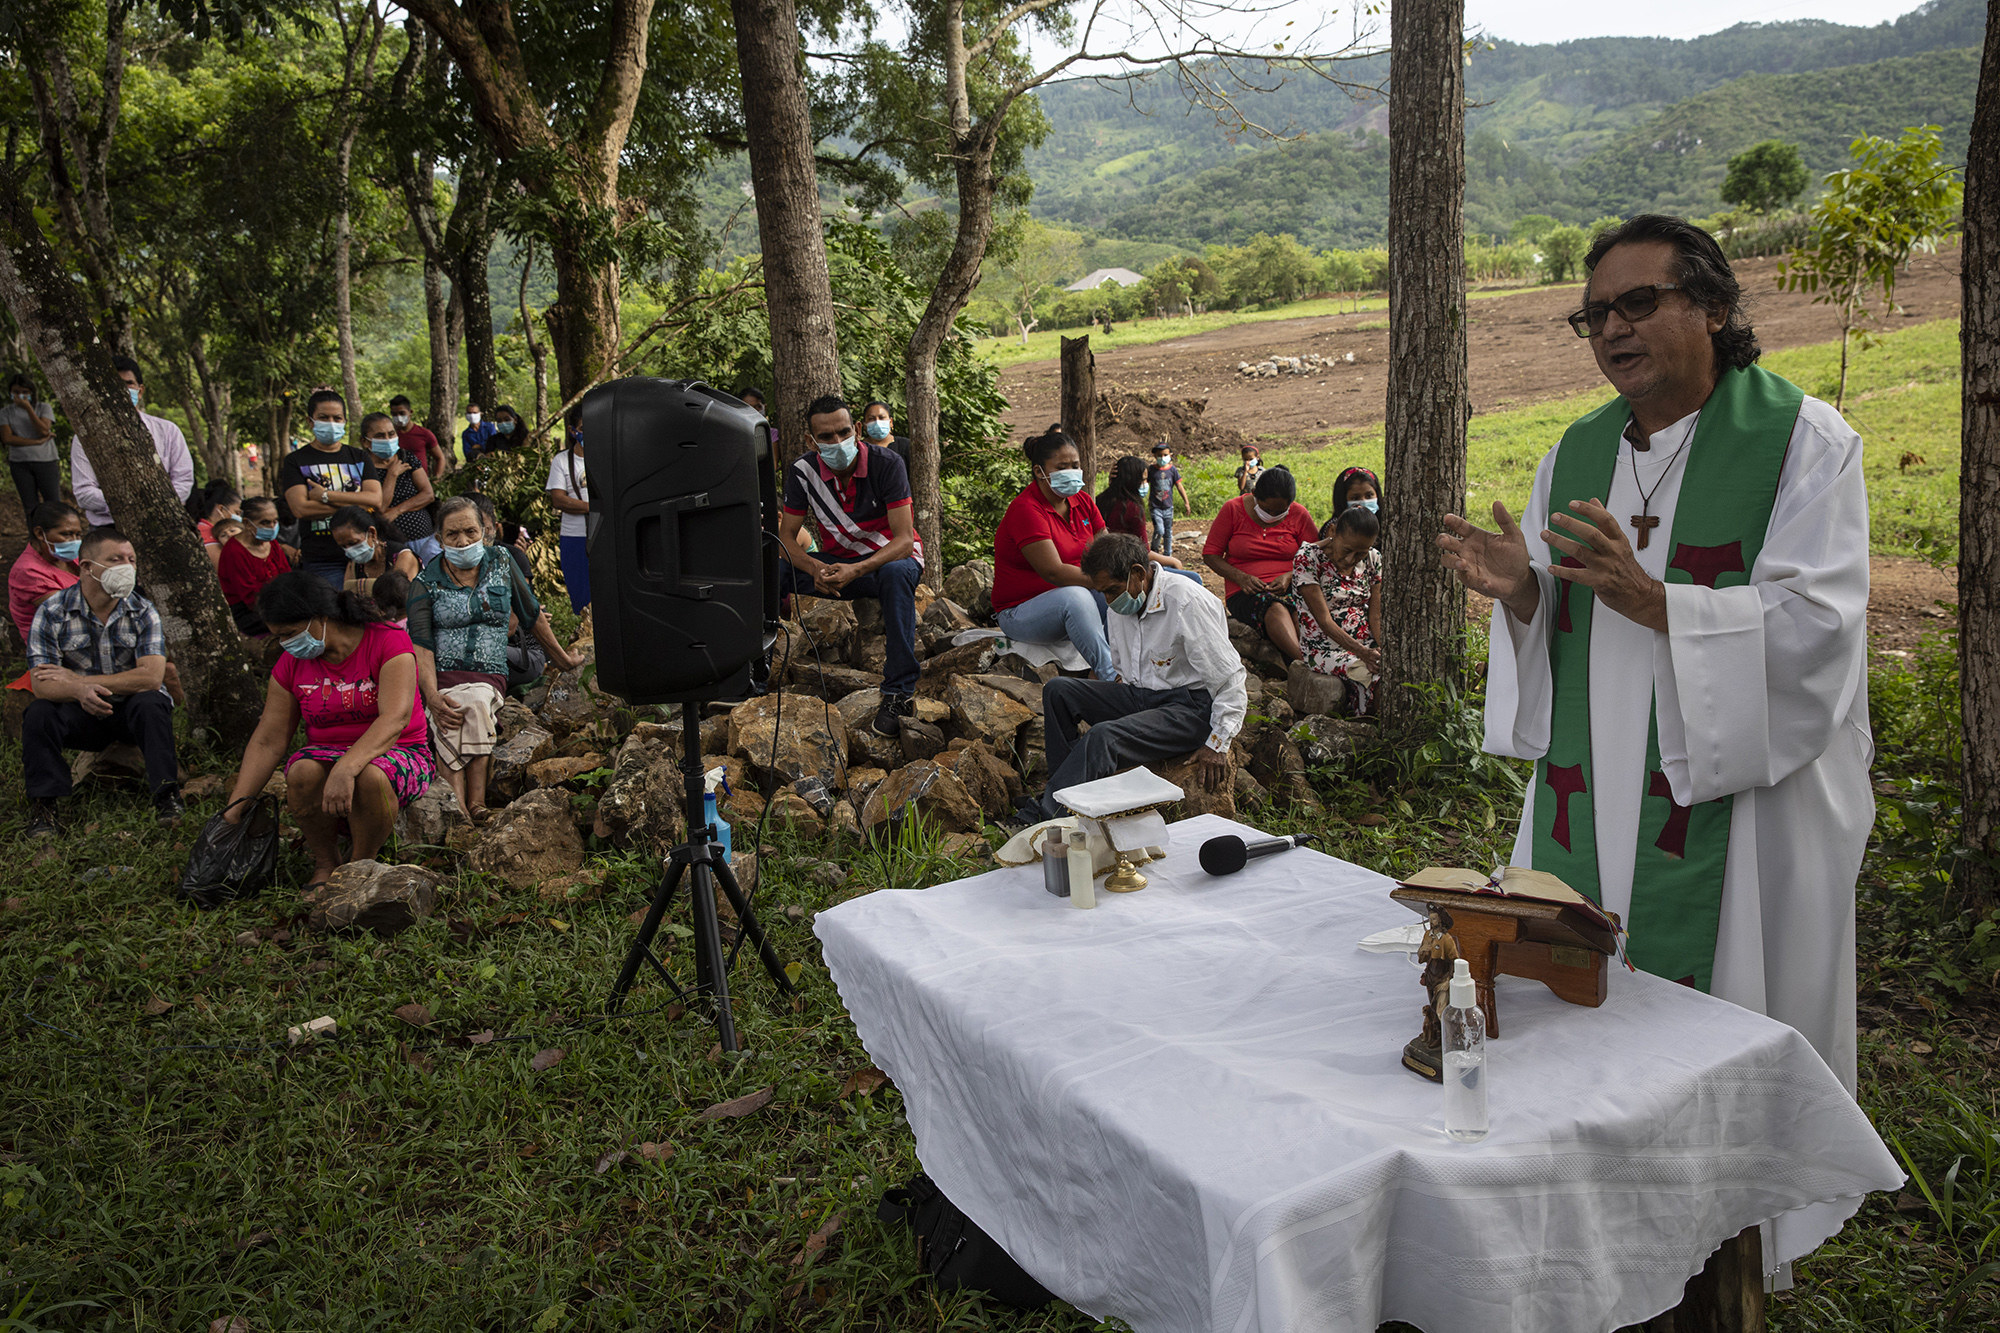 Friar Leopoldo Serrano stands at a table with a white cover to celebrate an outdoor Mass at Mission San Francisco de Asis in Honduras on June 27; a number of people wearing masks sit nearby